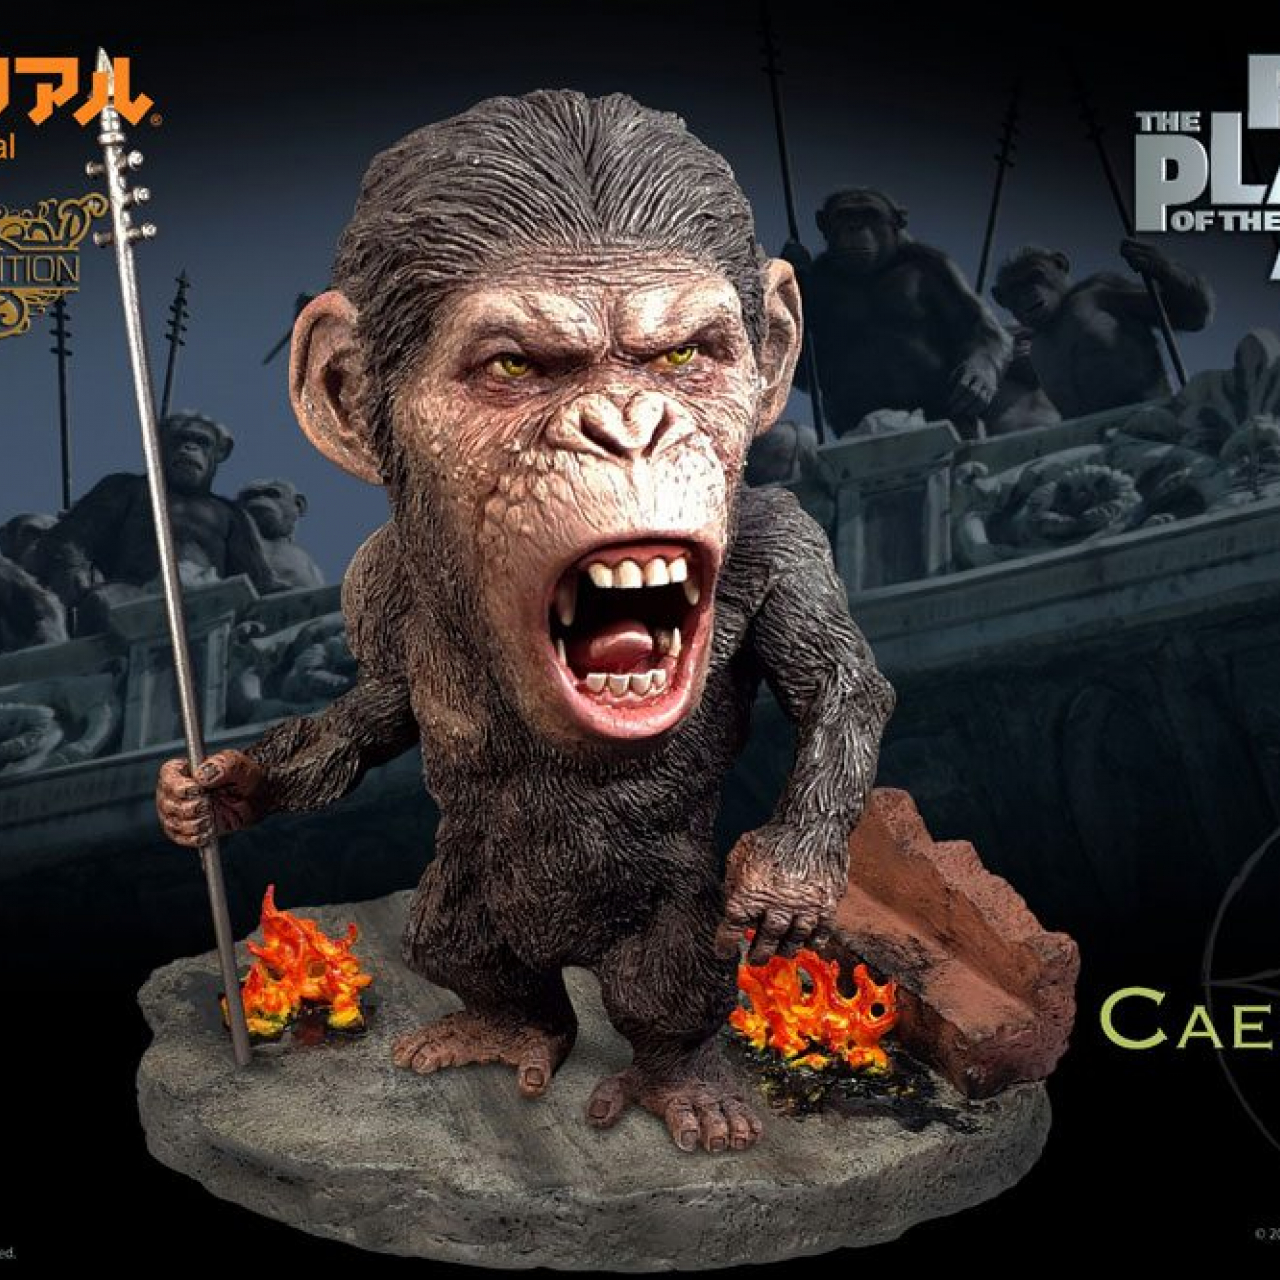 Rise of the Planet of the Apes Deform Real Series Soft Vinyl Statue Caesar Spear Ver. Deluxe 15 cm